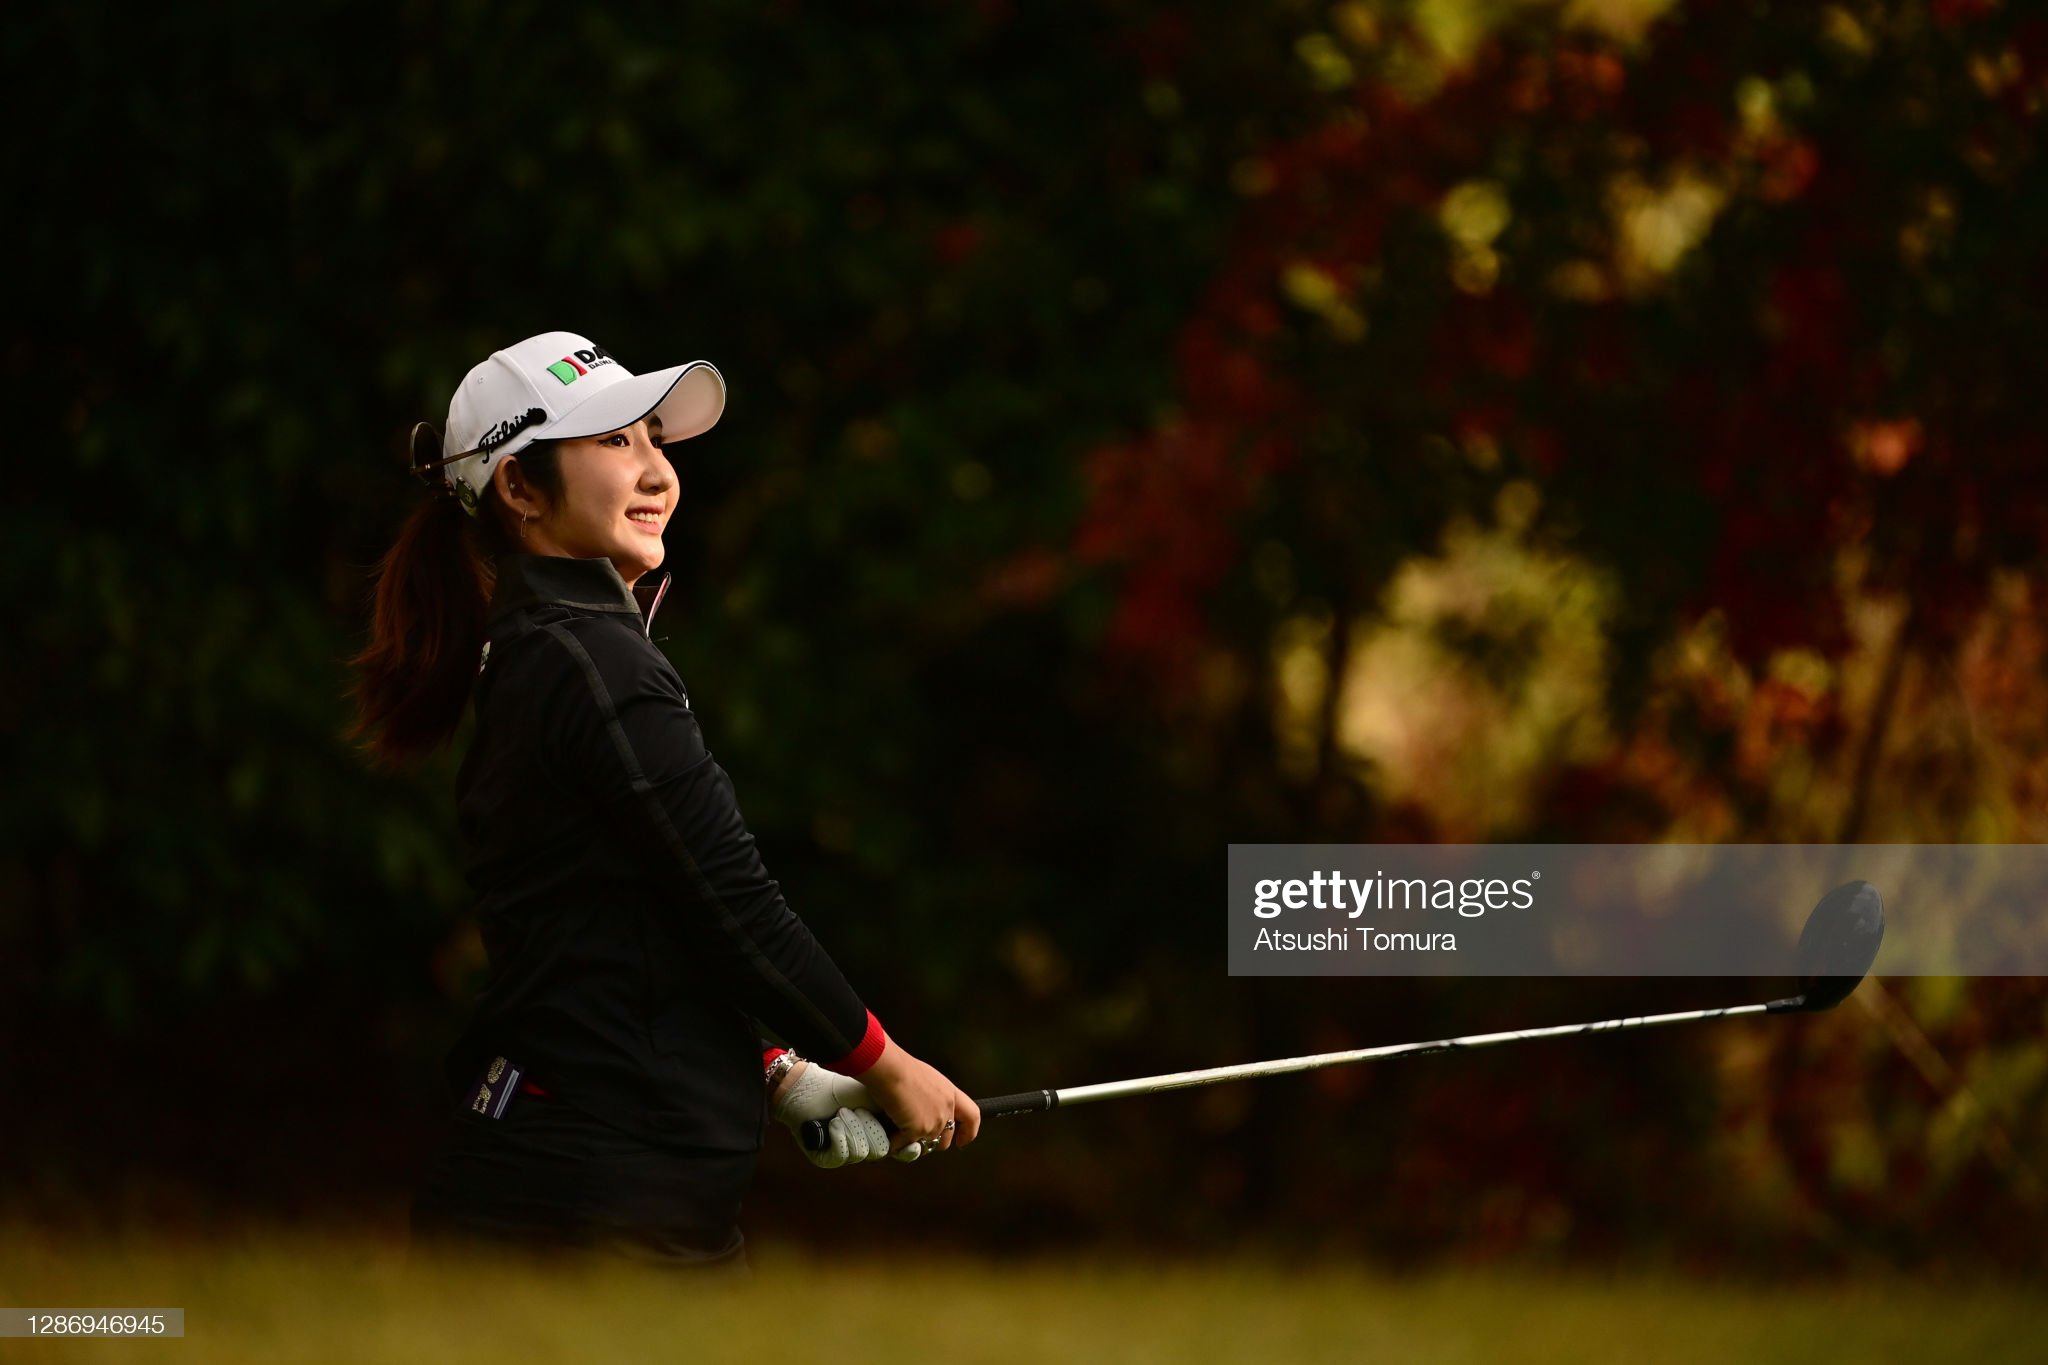 https://media.gettyimages.com/photos/seonwoo-bae-of-south-korea-hits-her-tee-shot-on-the-2nd-hole-during-picture-id1286946945?s=2048x2048